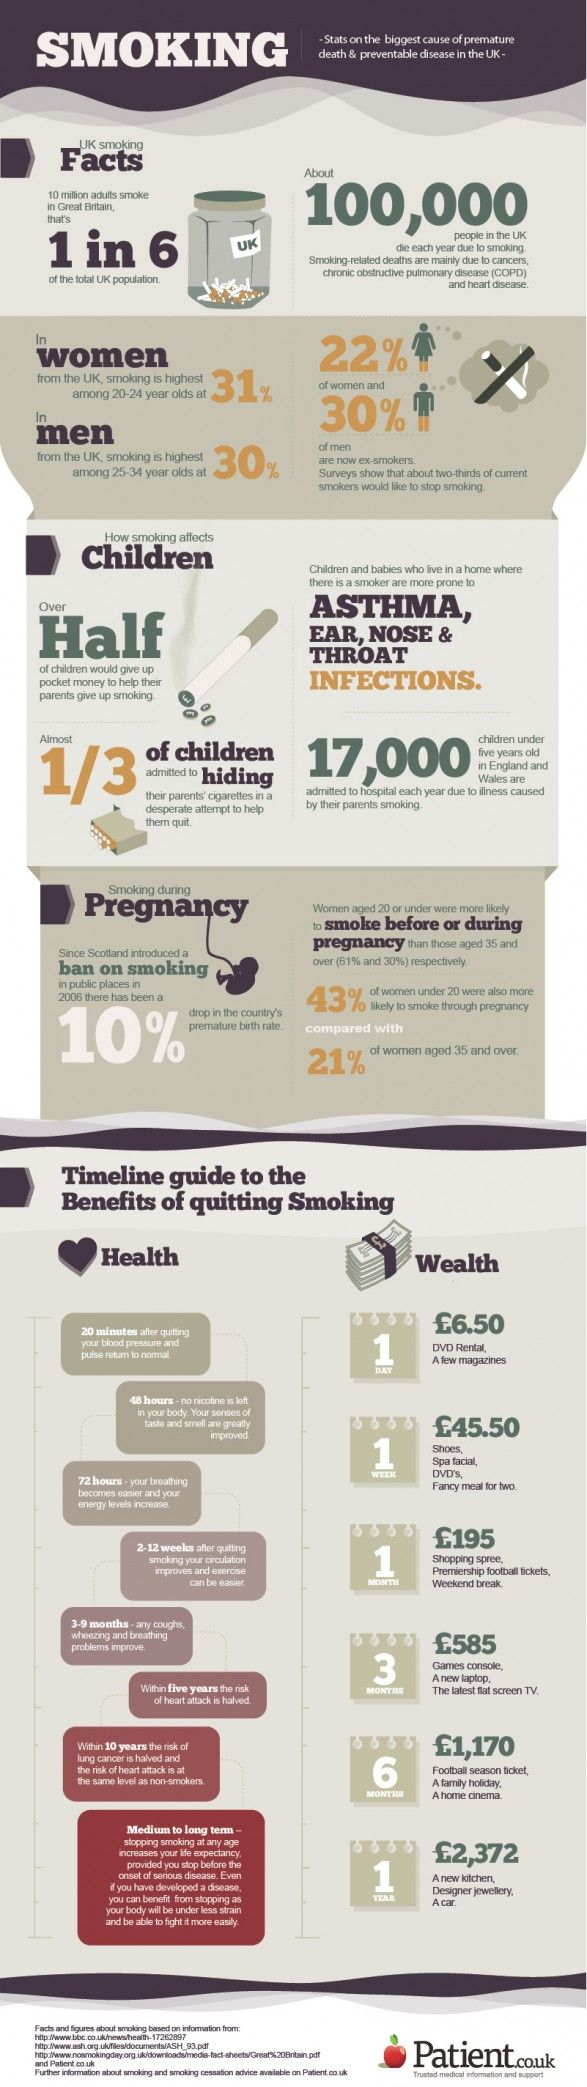 We created this infographic in support of today's No Smoking Day - good luck to all who have vowed to quit ;)